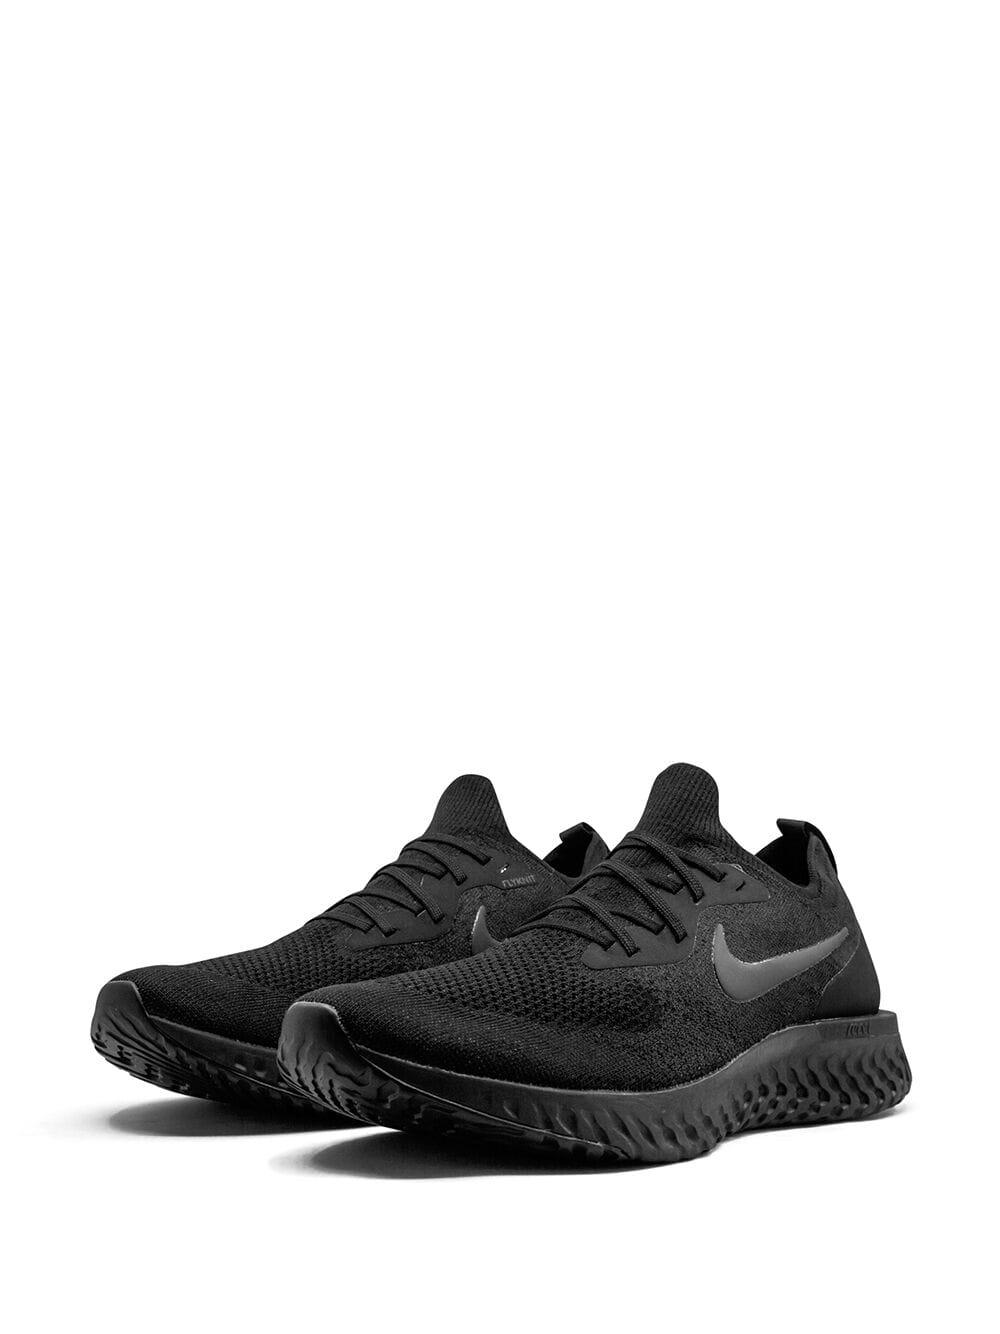 66f1927a202f Lyst - Nike Epic React Flyknit Trainers in Black for Men